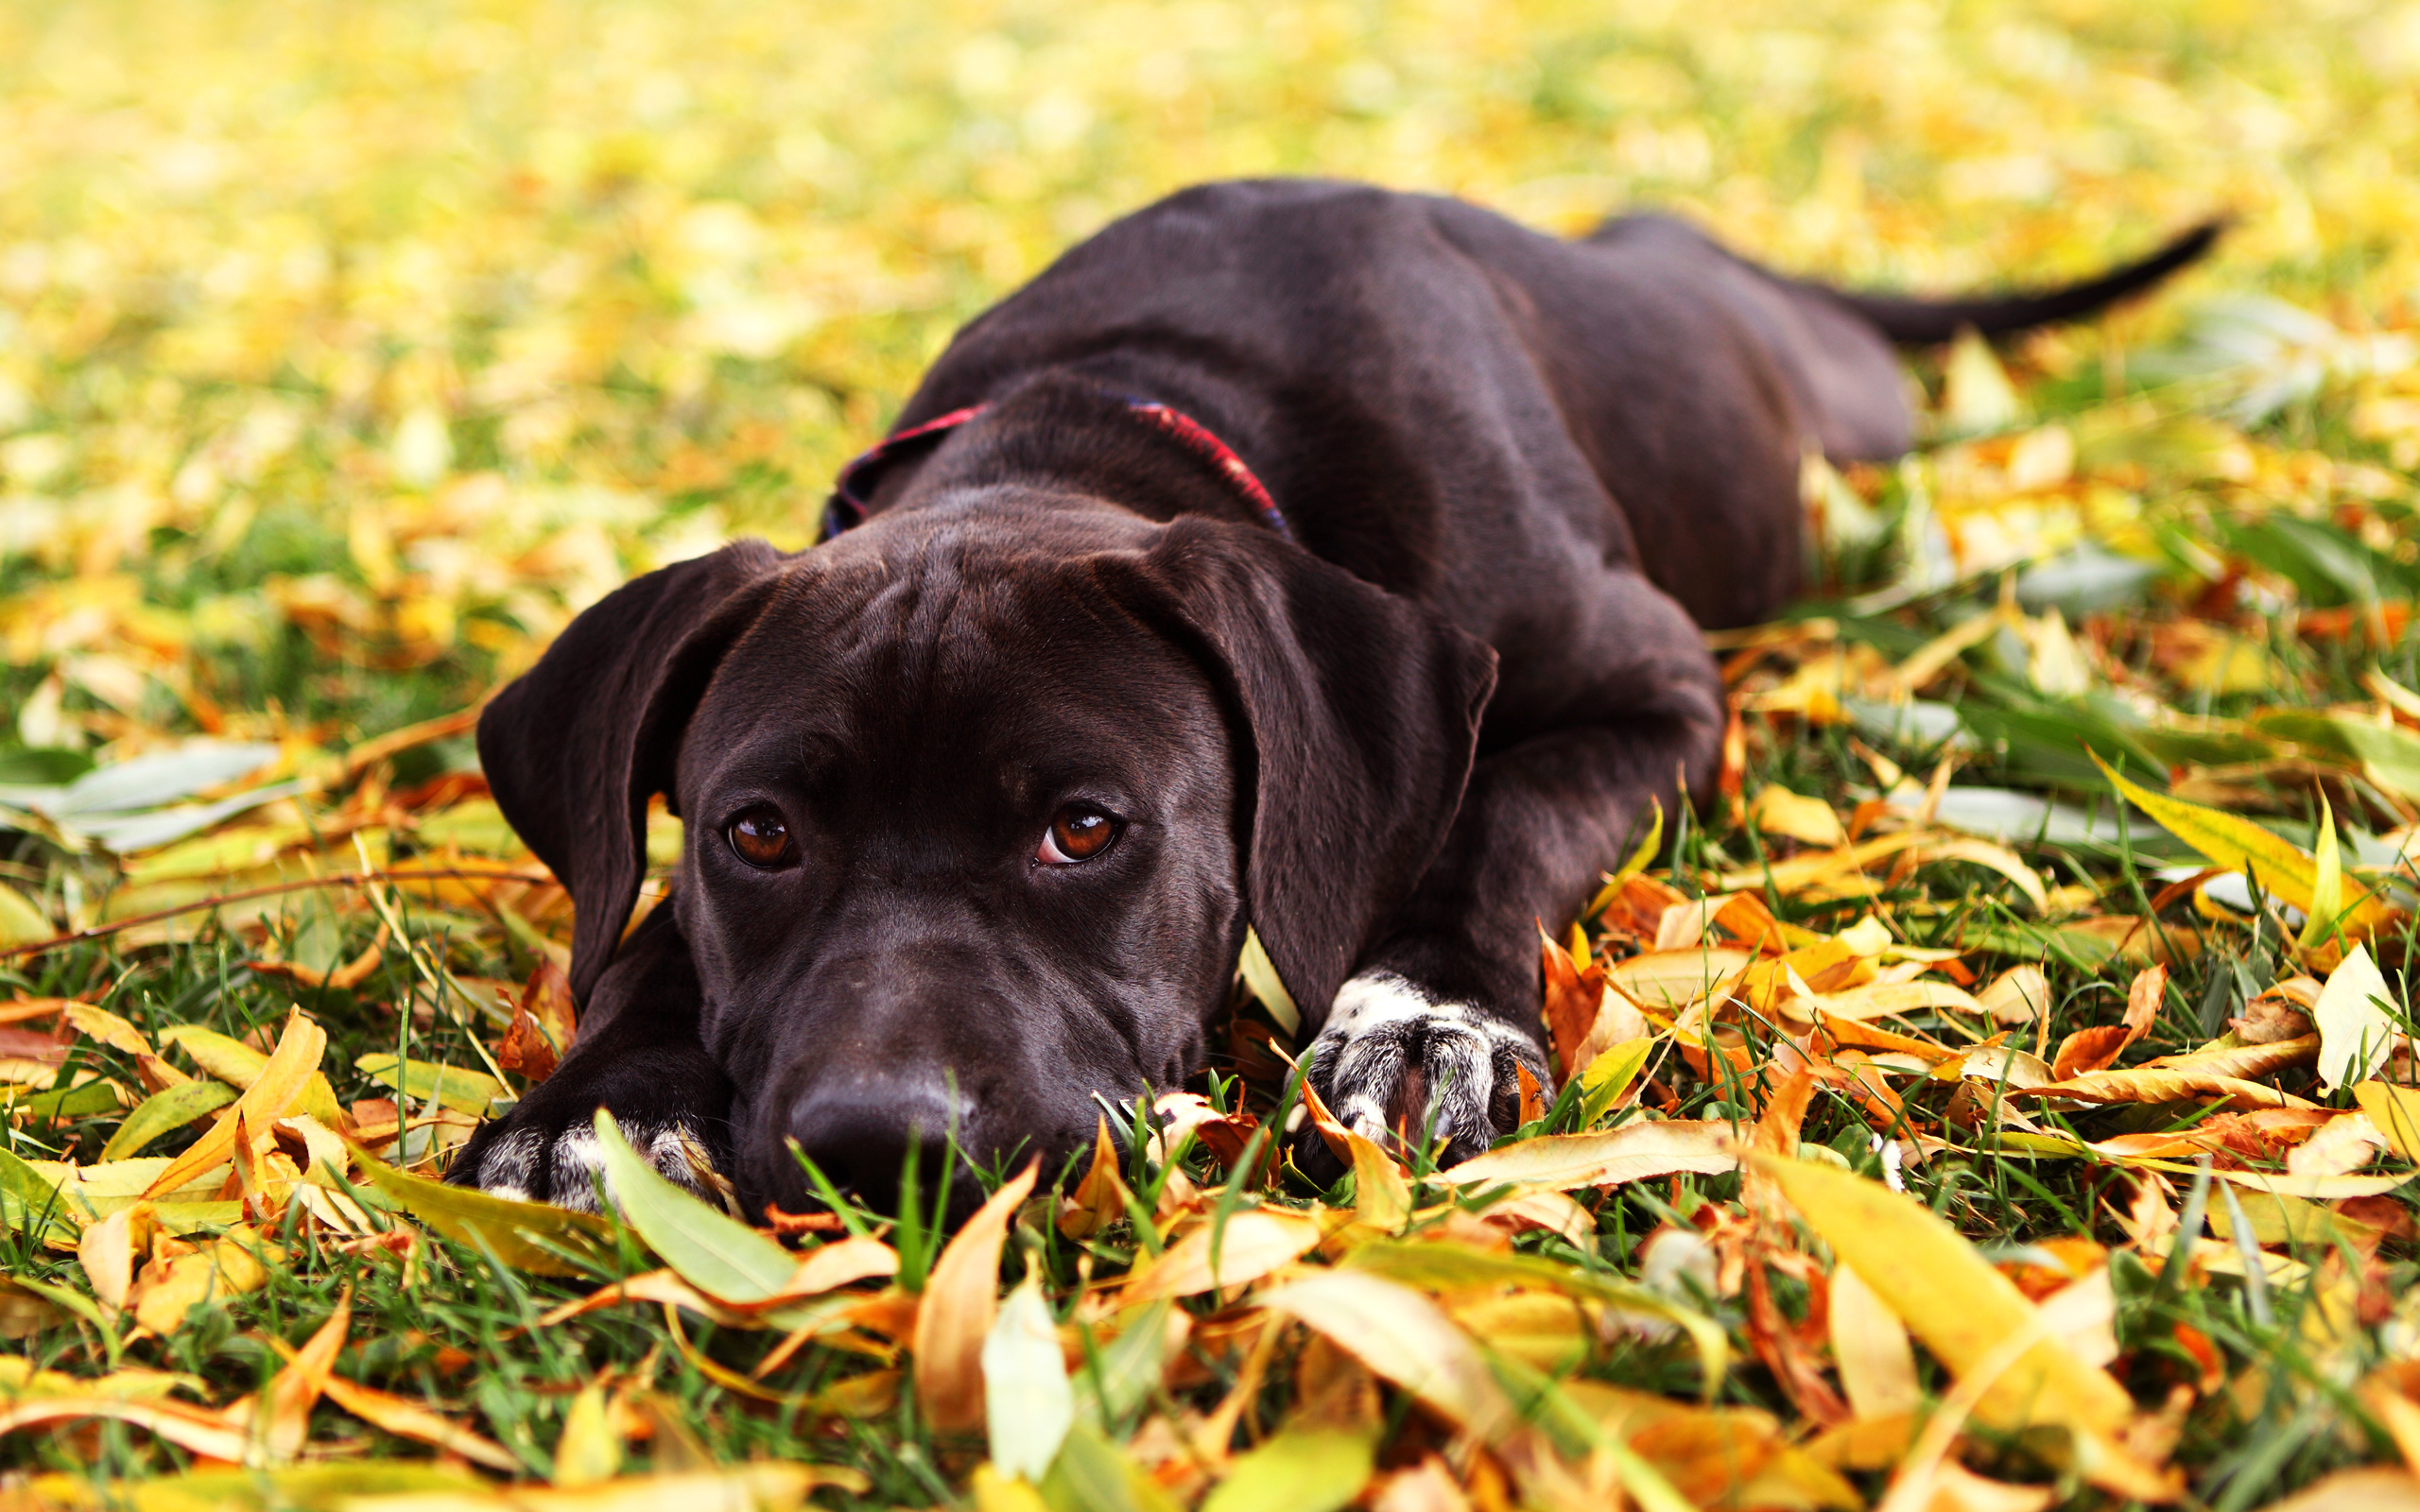 Fall Wallpaper With Dogs Images Pictures   Becuo 2560x1600